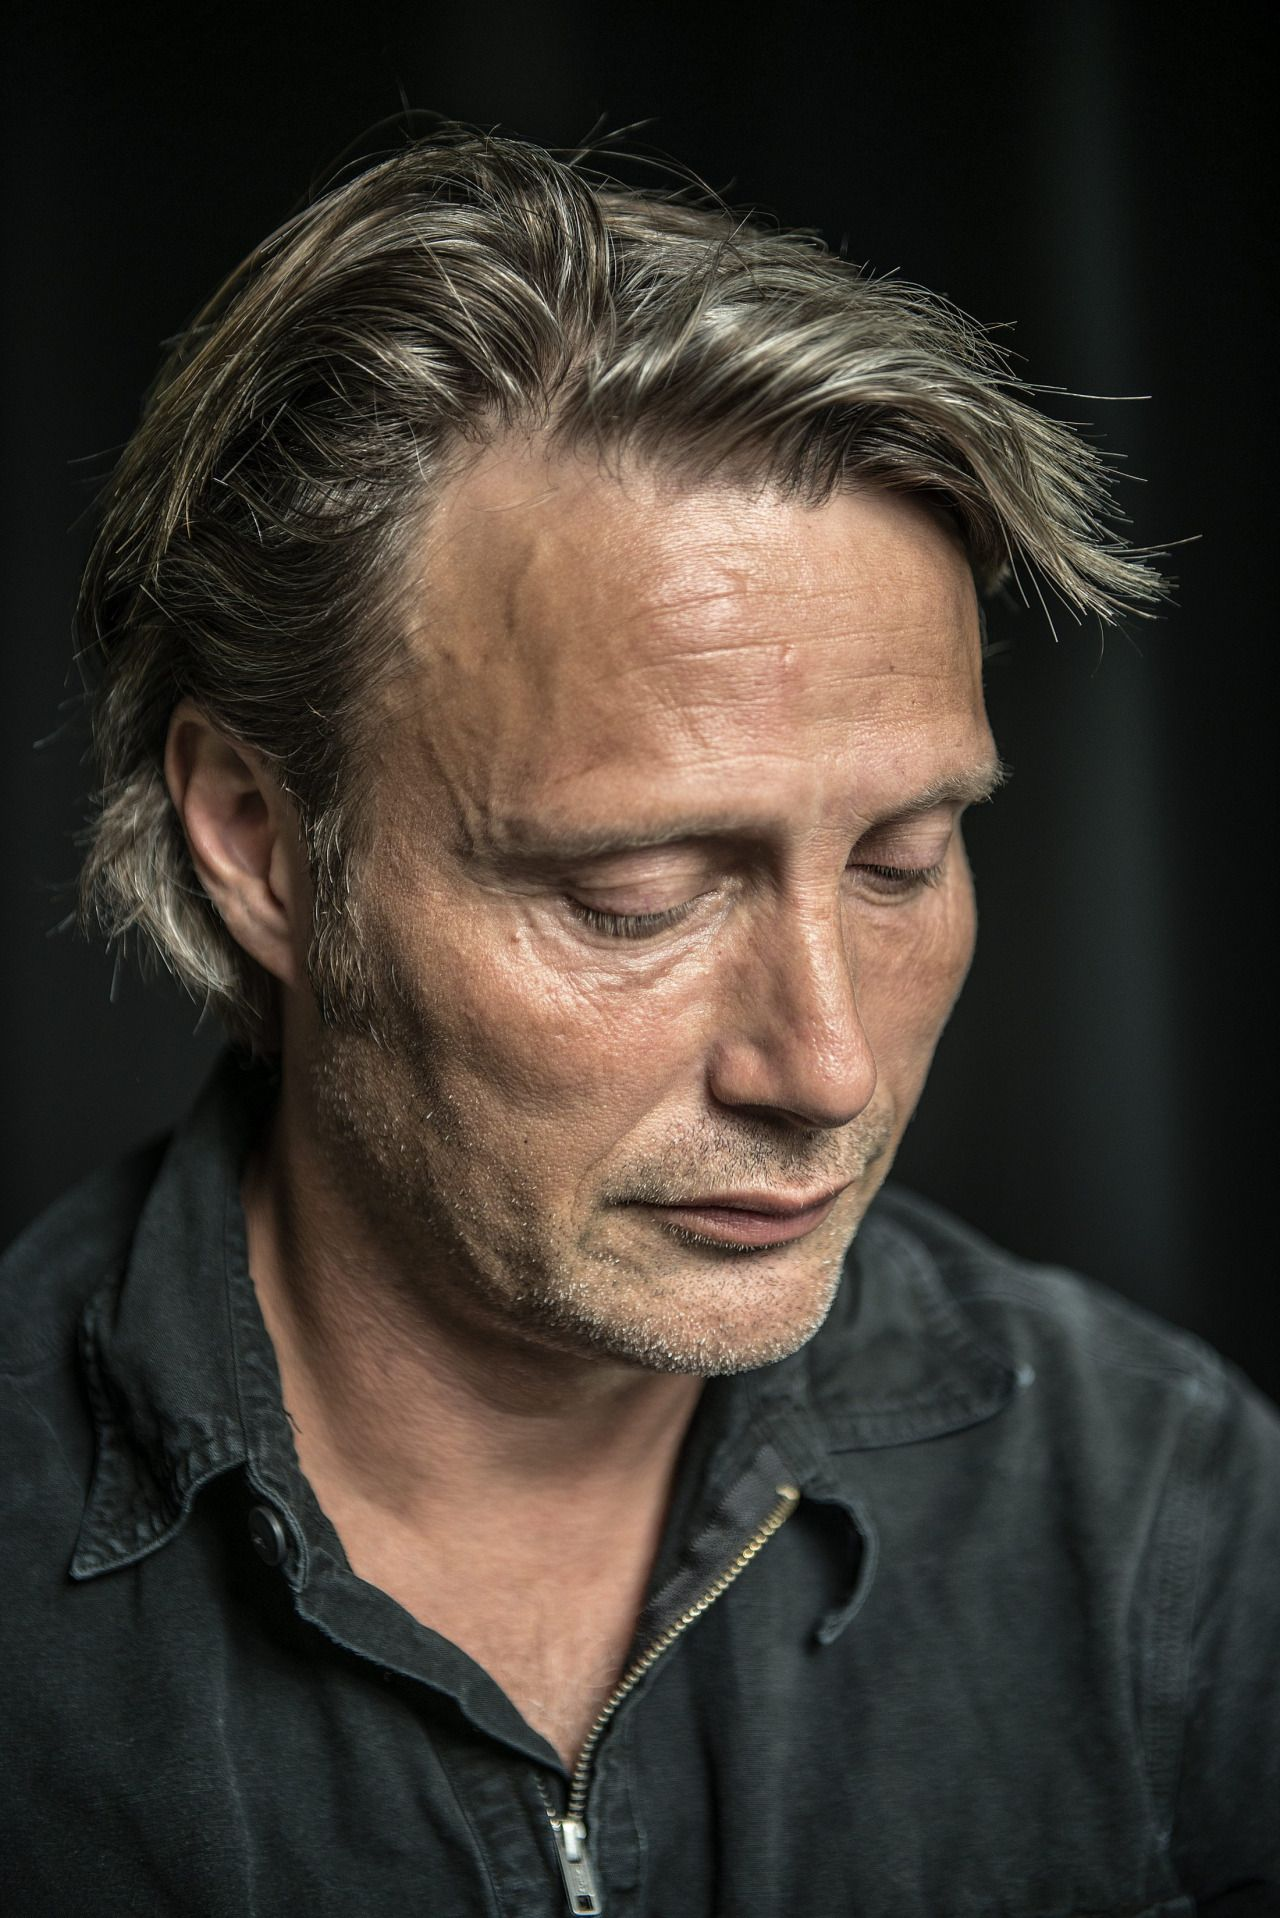 The Hunt Danish Jagten is a 2012 Danish mystery drama film directed by Thomas Vinterberg and starring Mads Mikkelsen The story is set in a small Danish village